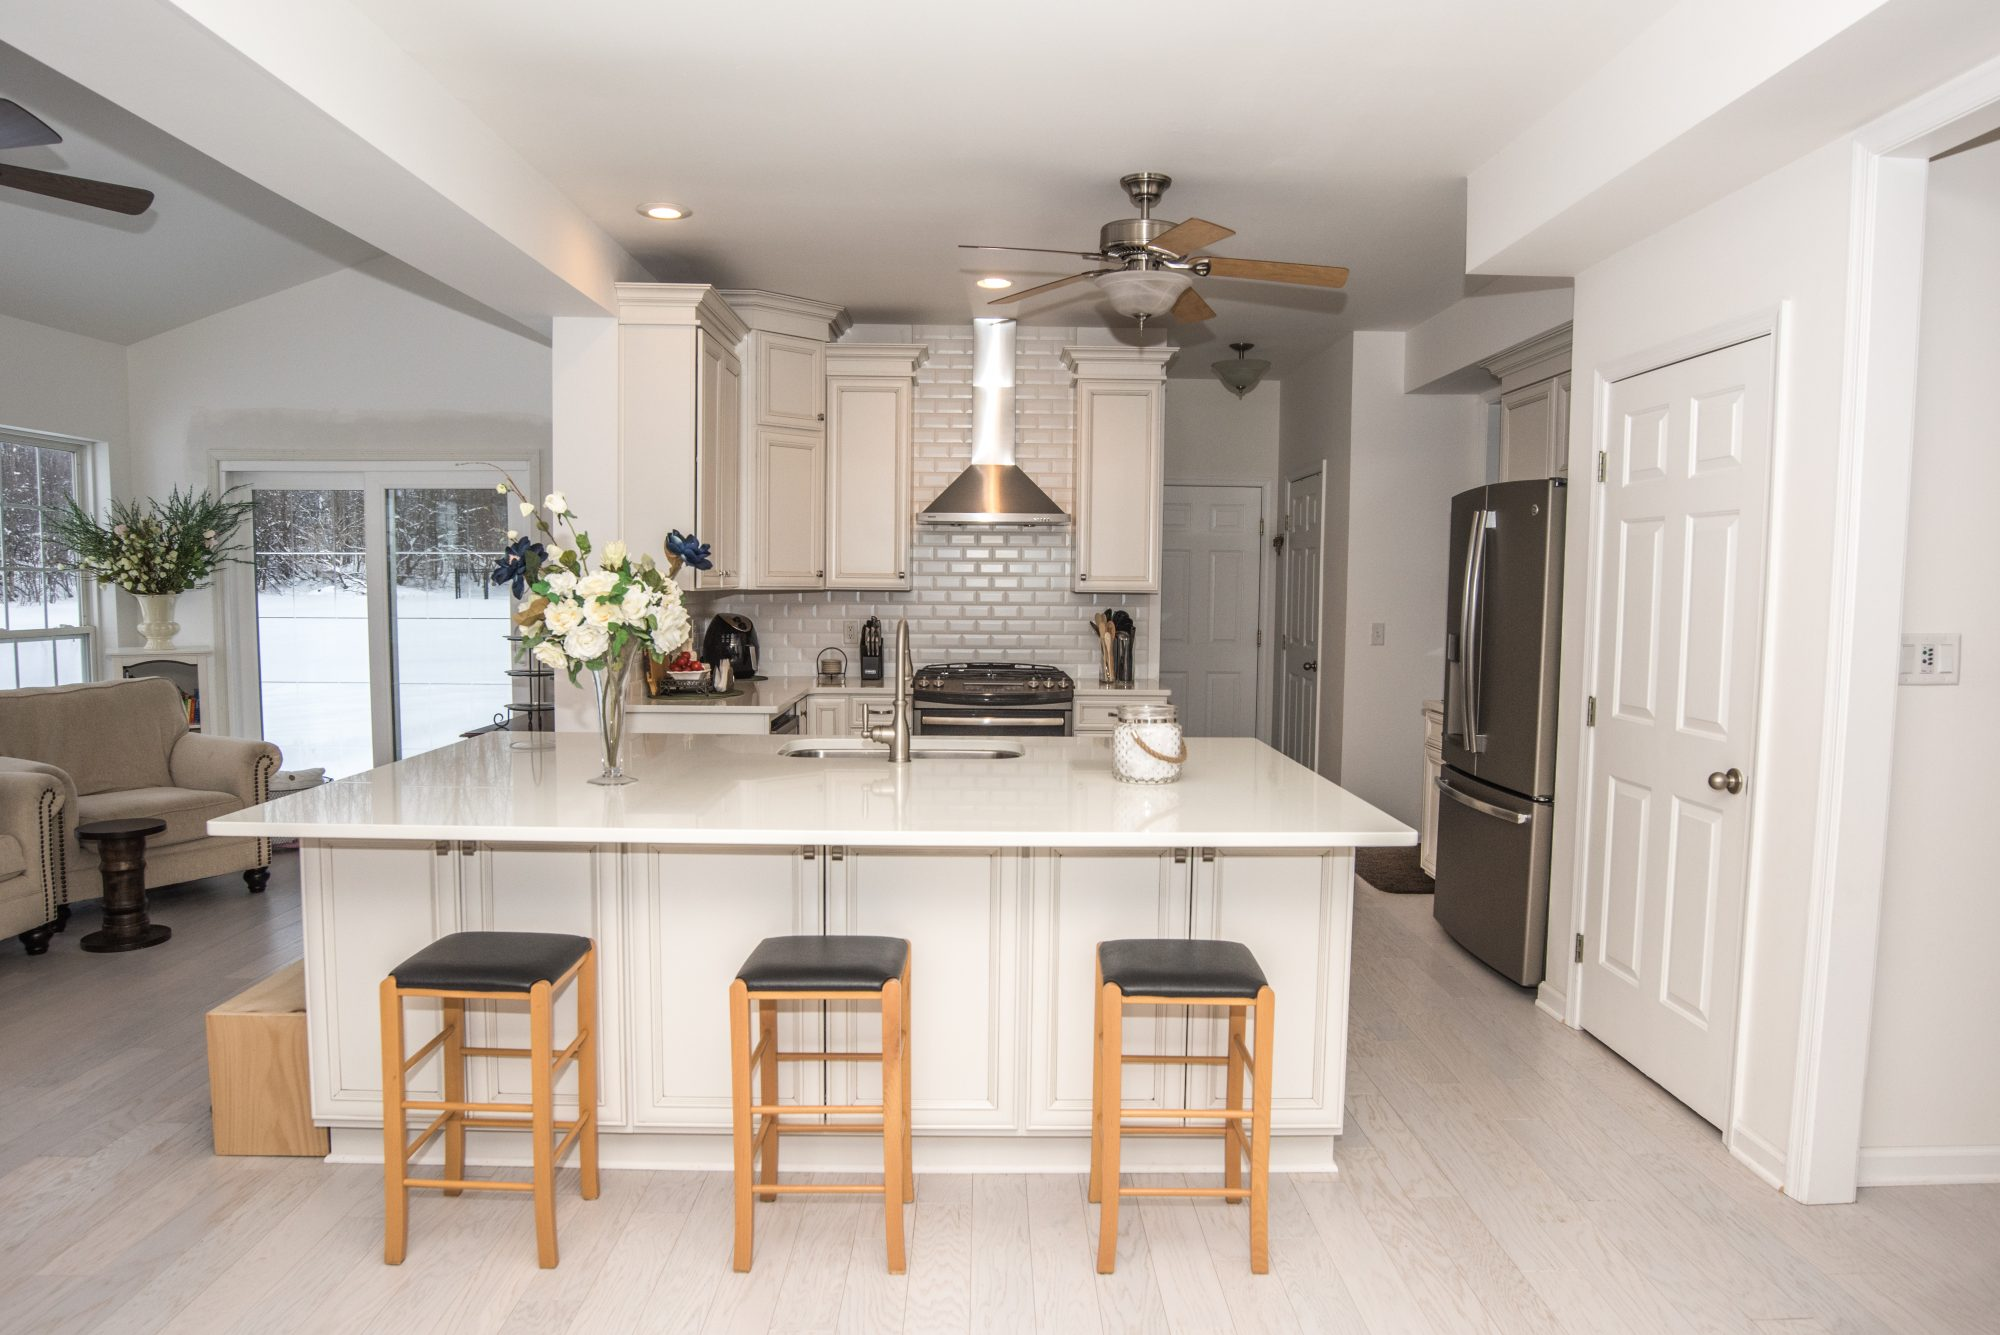 Kitchen Design Jobs Buffalo Ny Kitchen Remodel Buffalo Ny Kitchen Remodeling Contractor